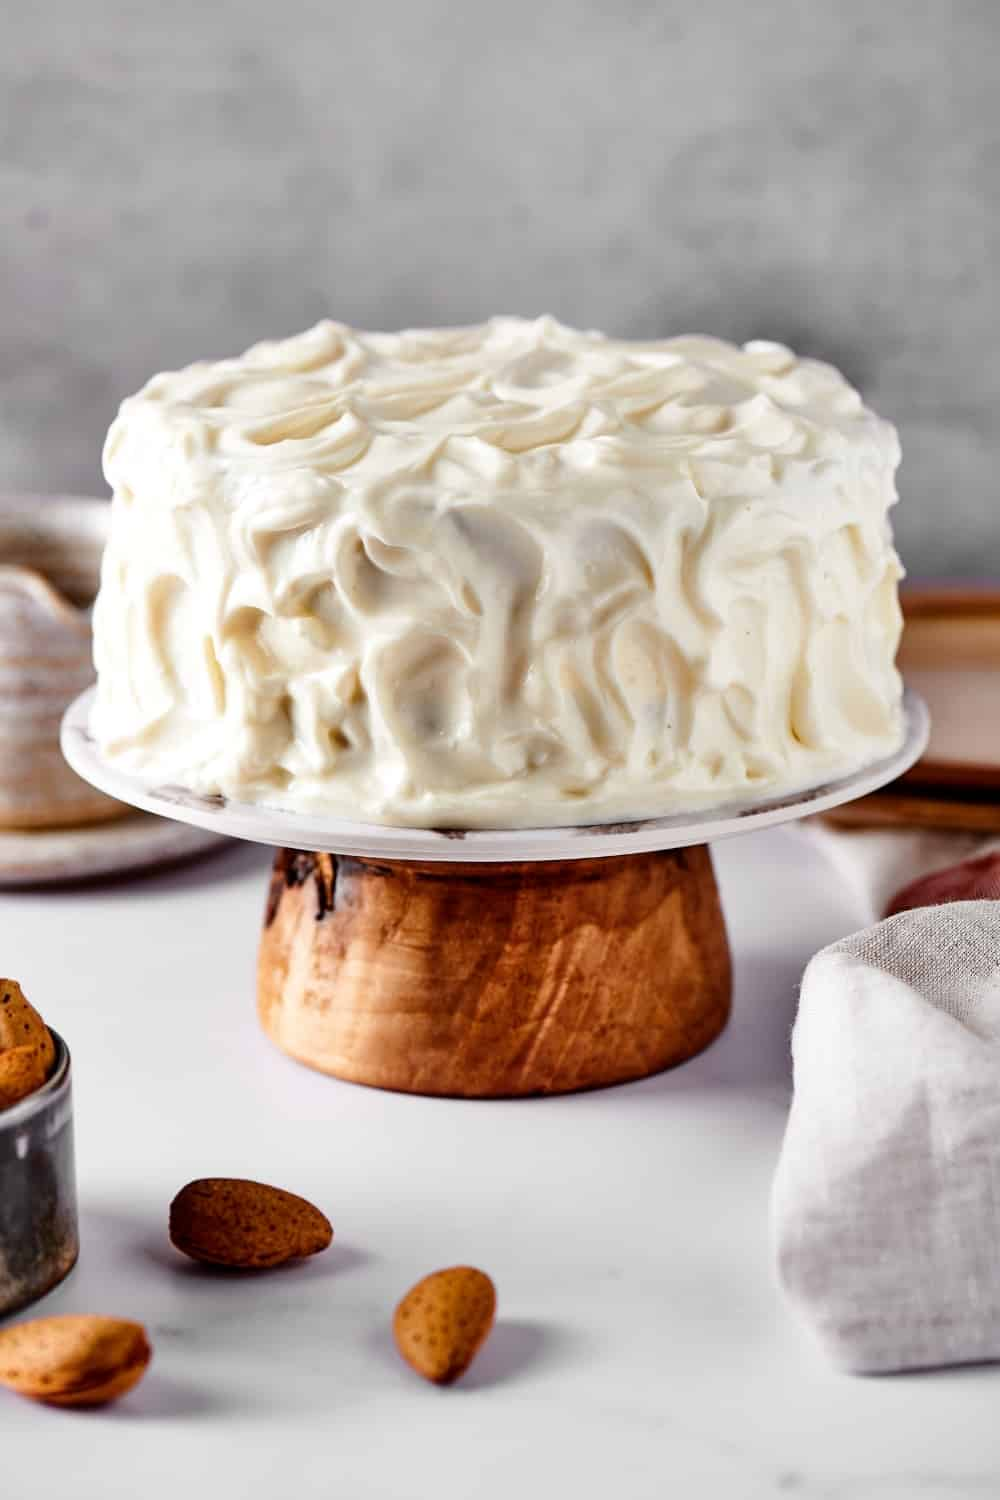 A vanilla cake covered in vanilla frosting on a cake stand and a white counter.